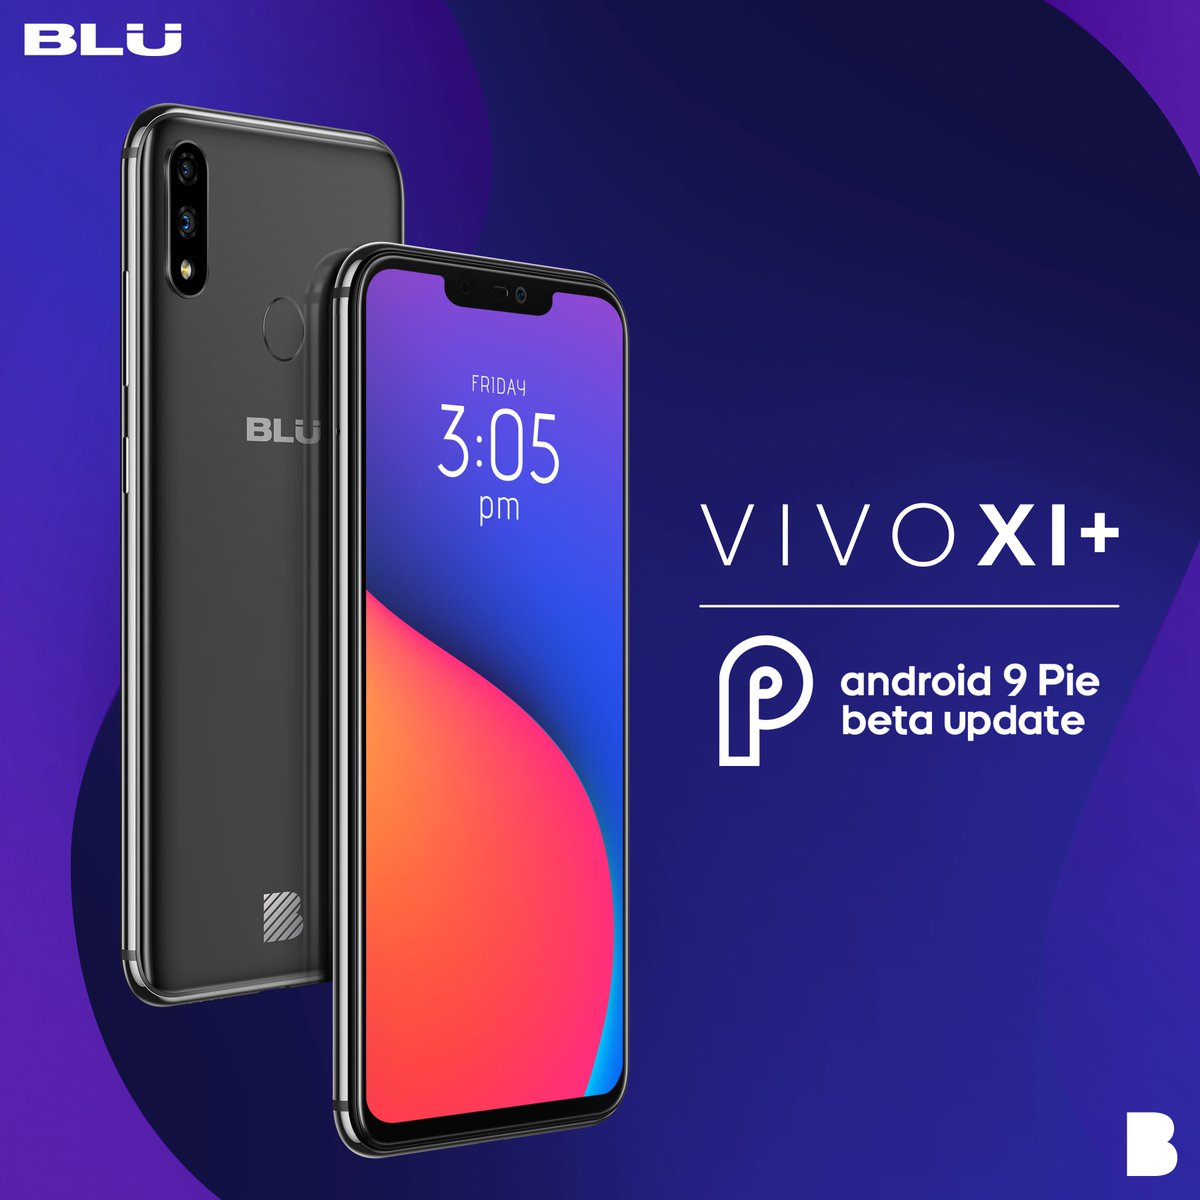 blu products on twitter